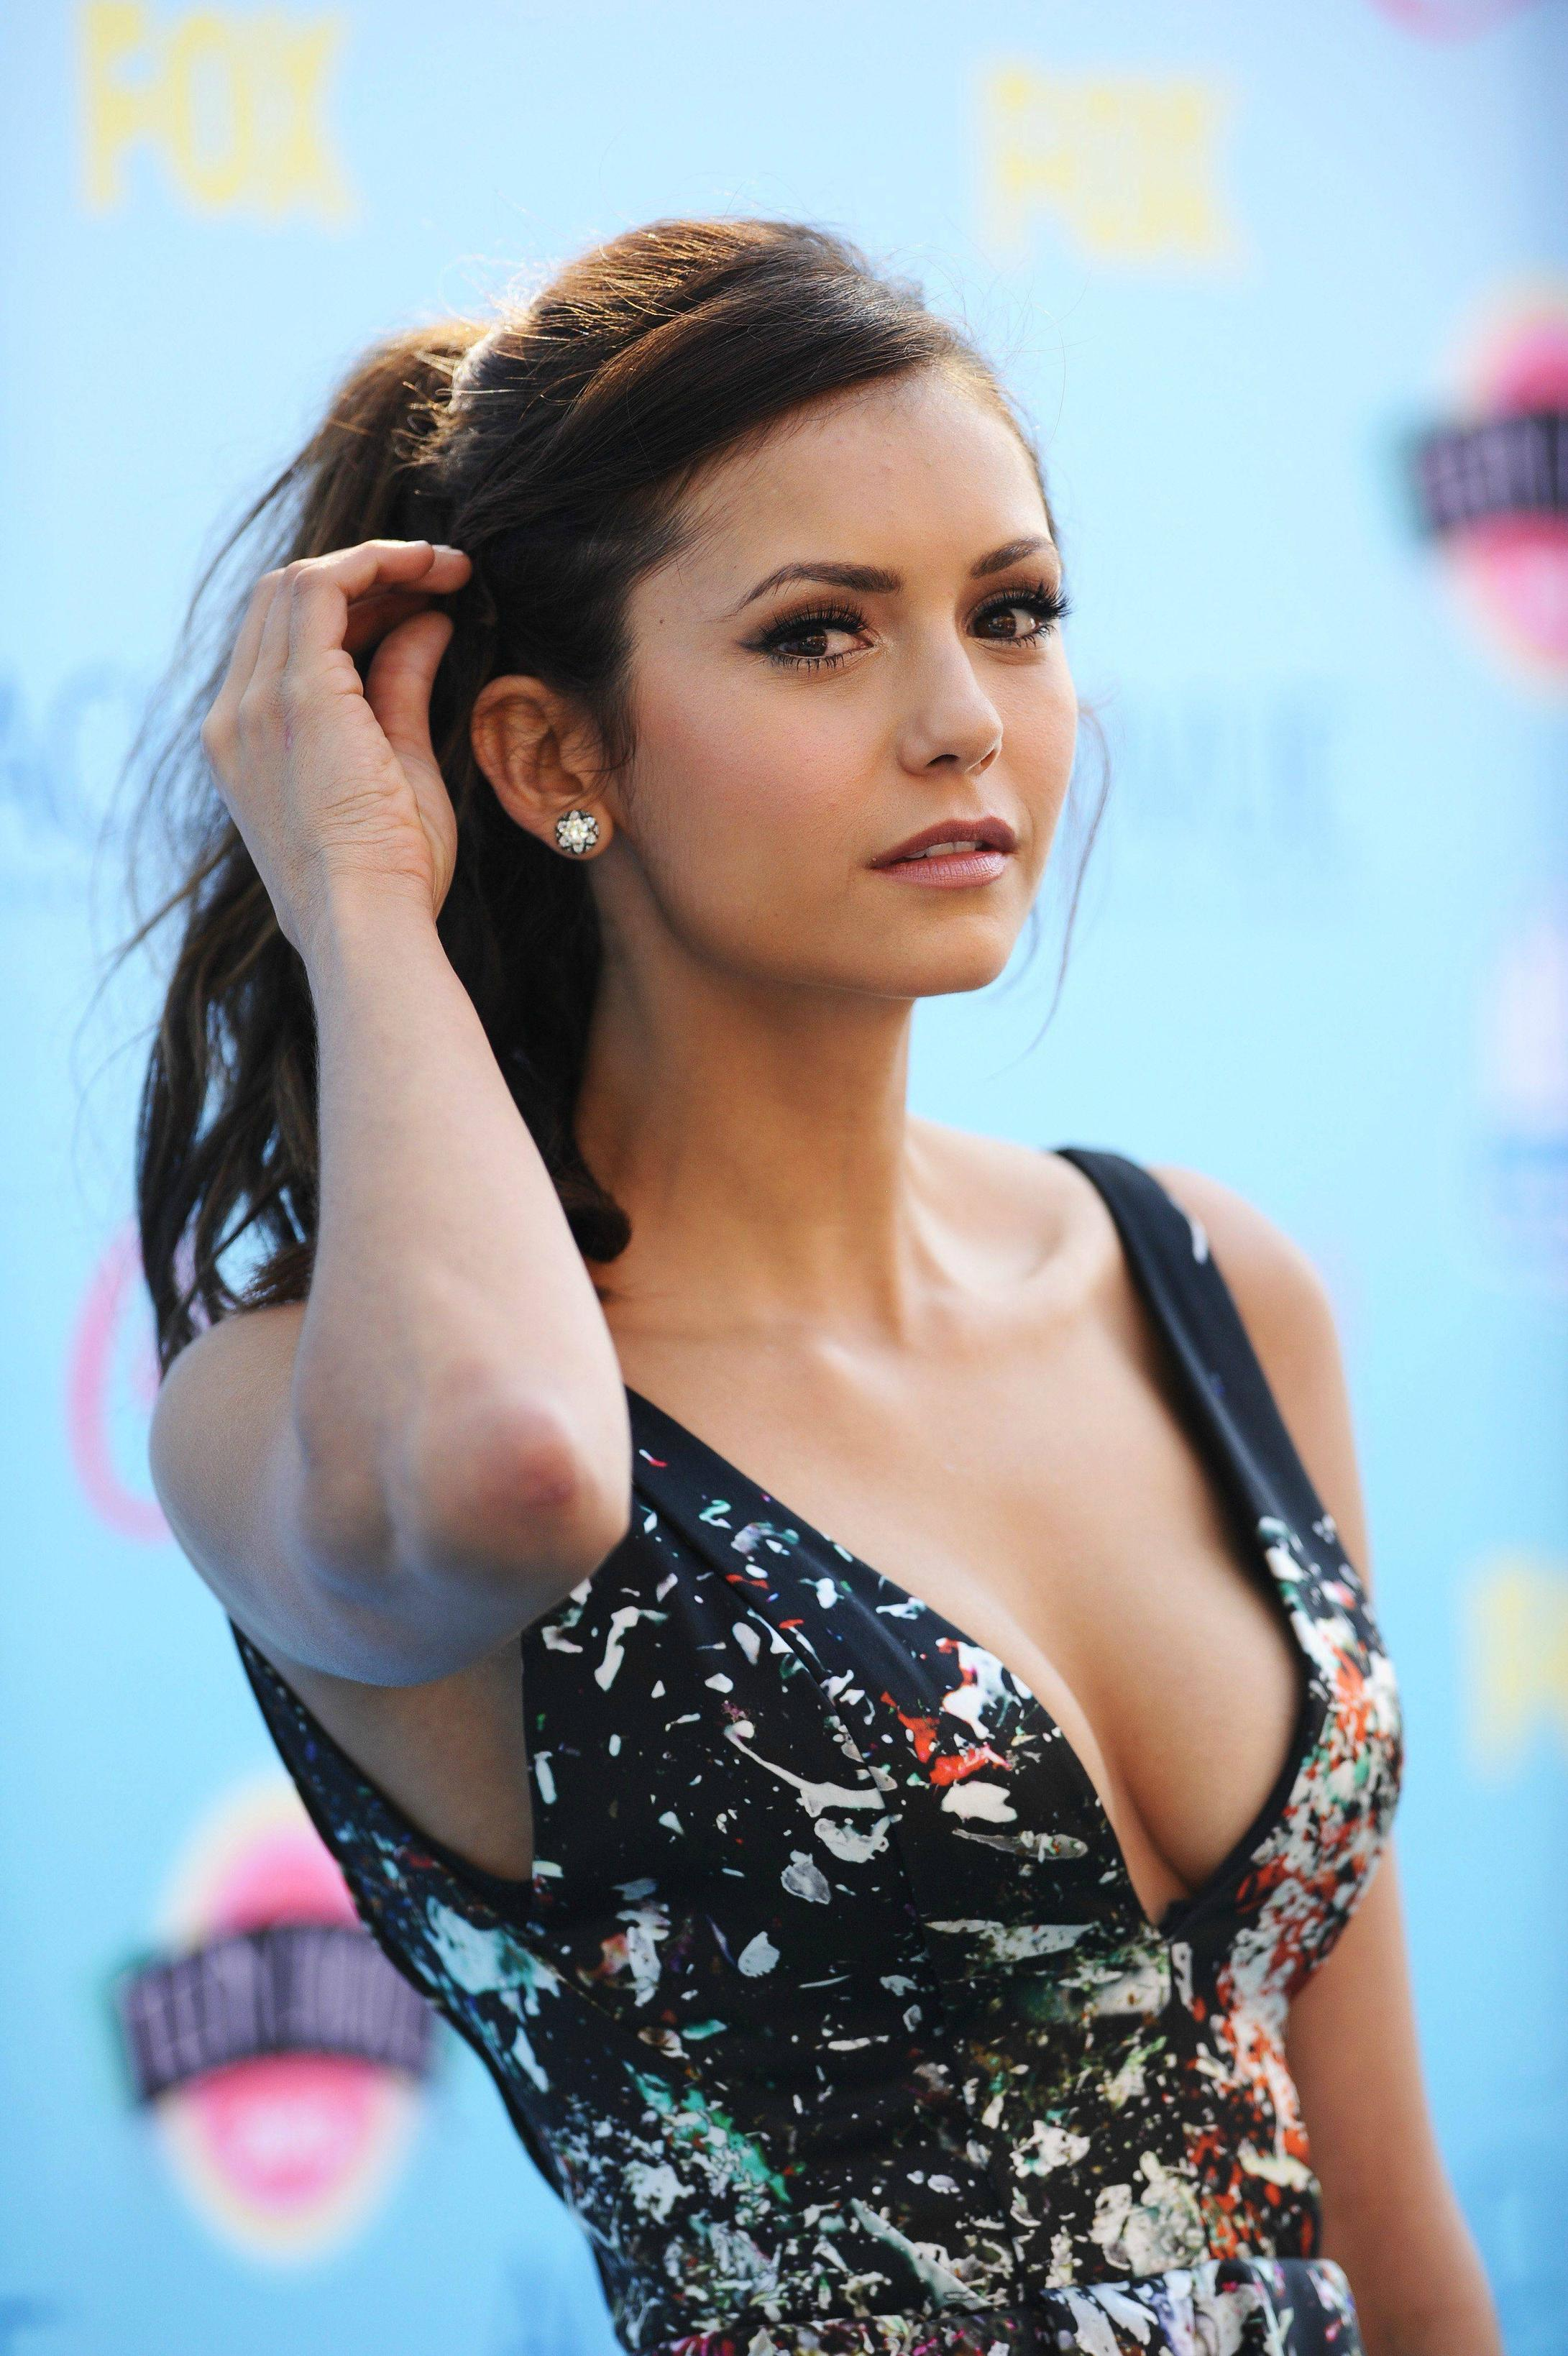 Pussy Boobs Nina Dobrev naked photo 2017